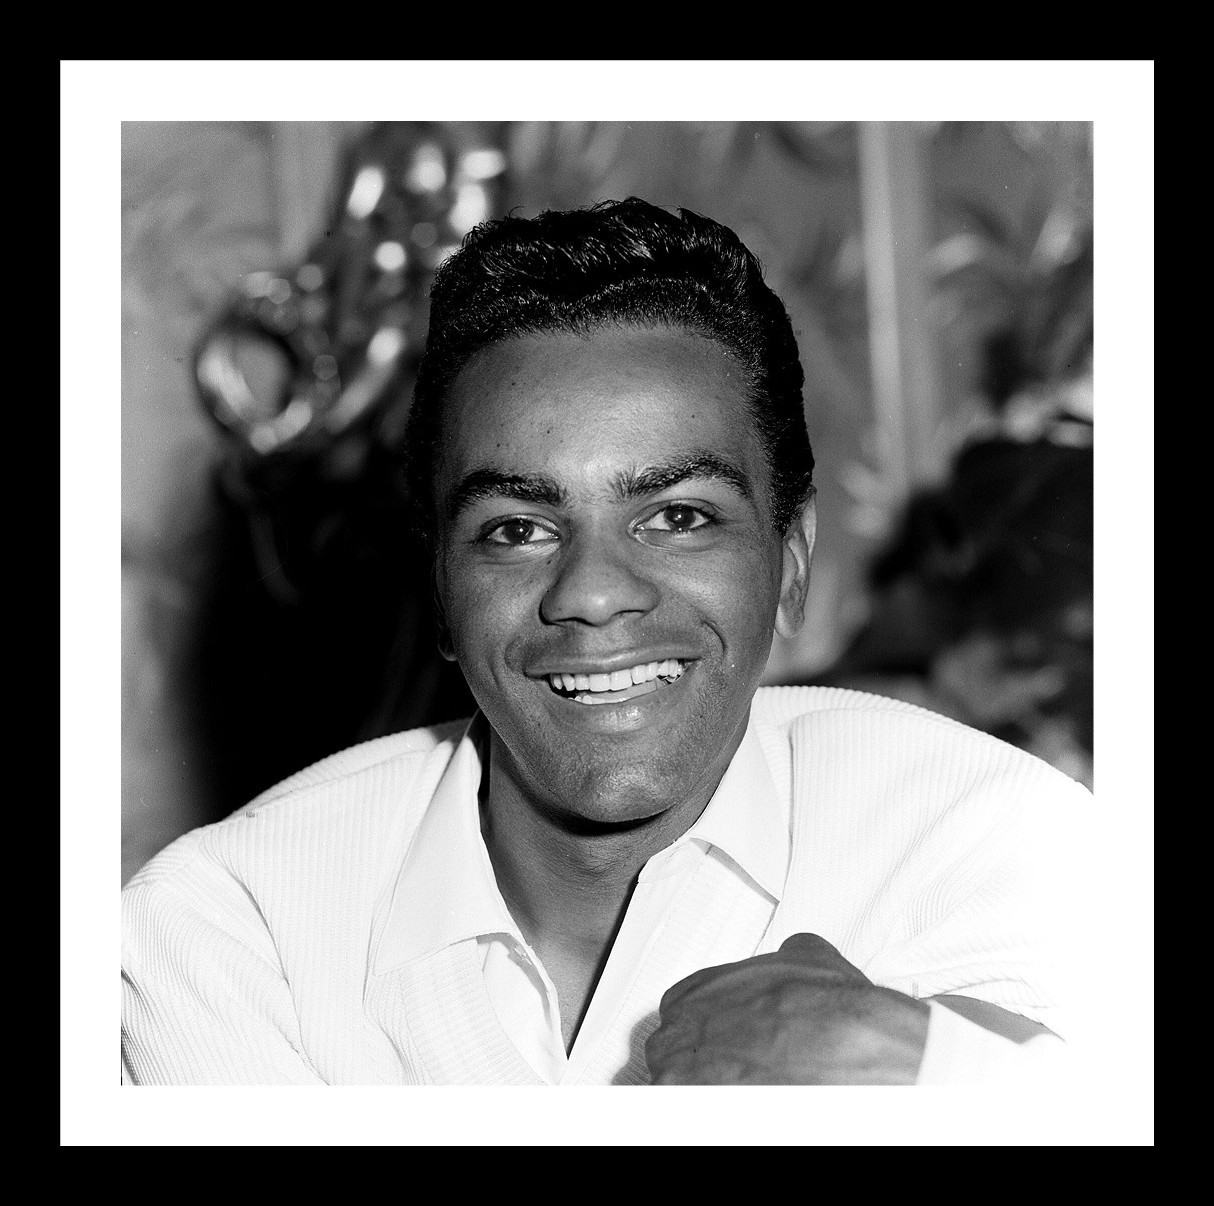 Johnny Mathis Appreciation Society: Johnny Mathis and the Elusive Grammy